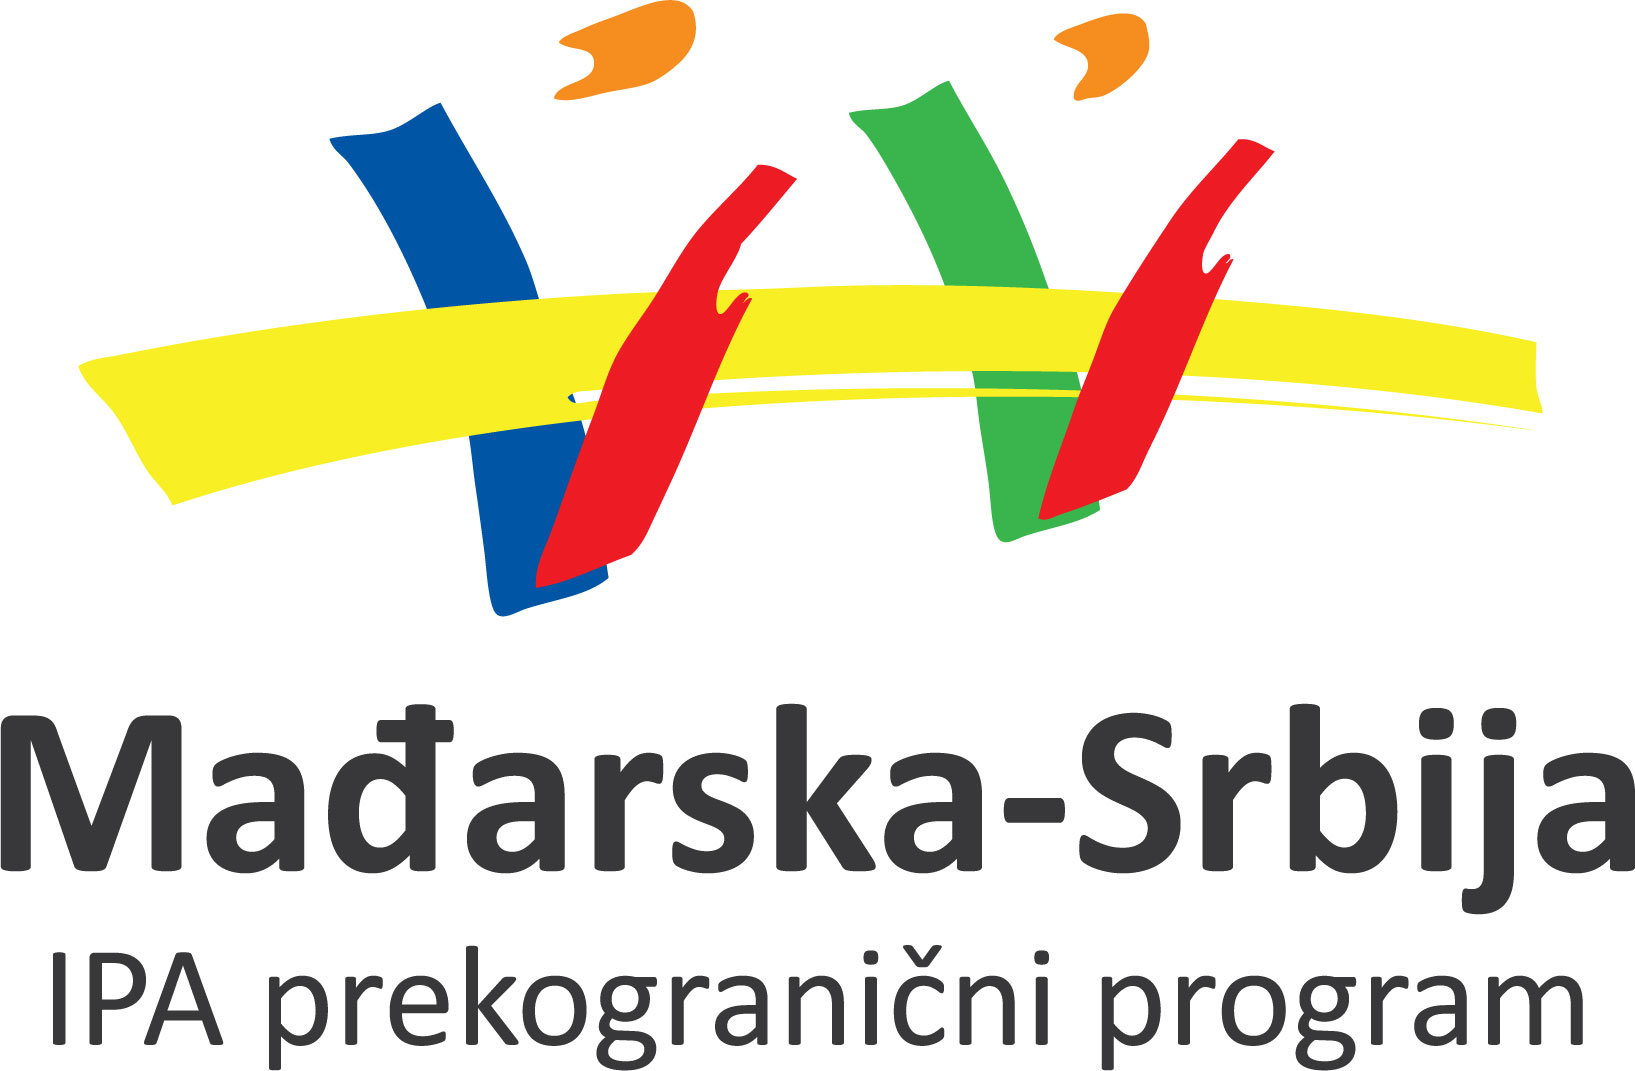 husrb logo srb center